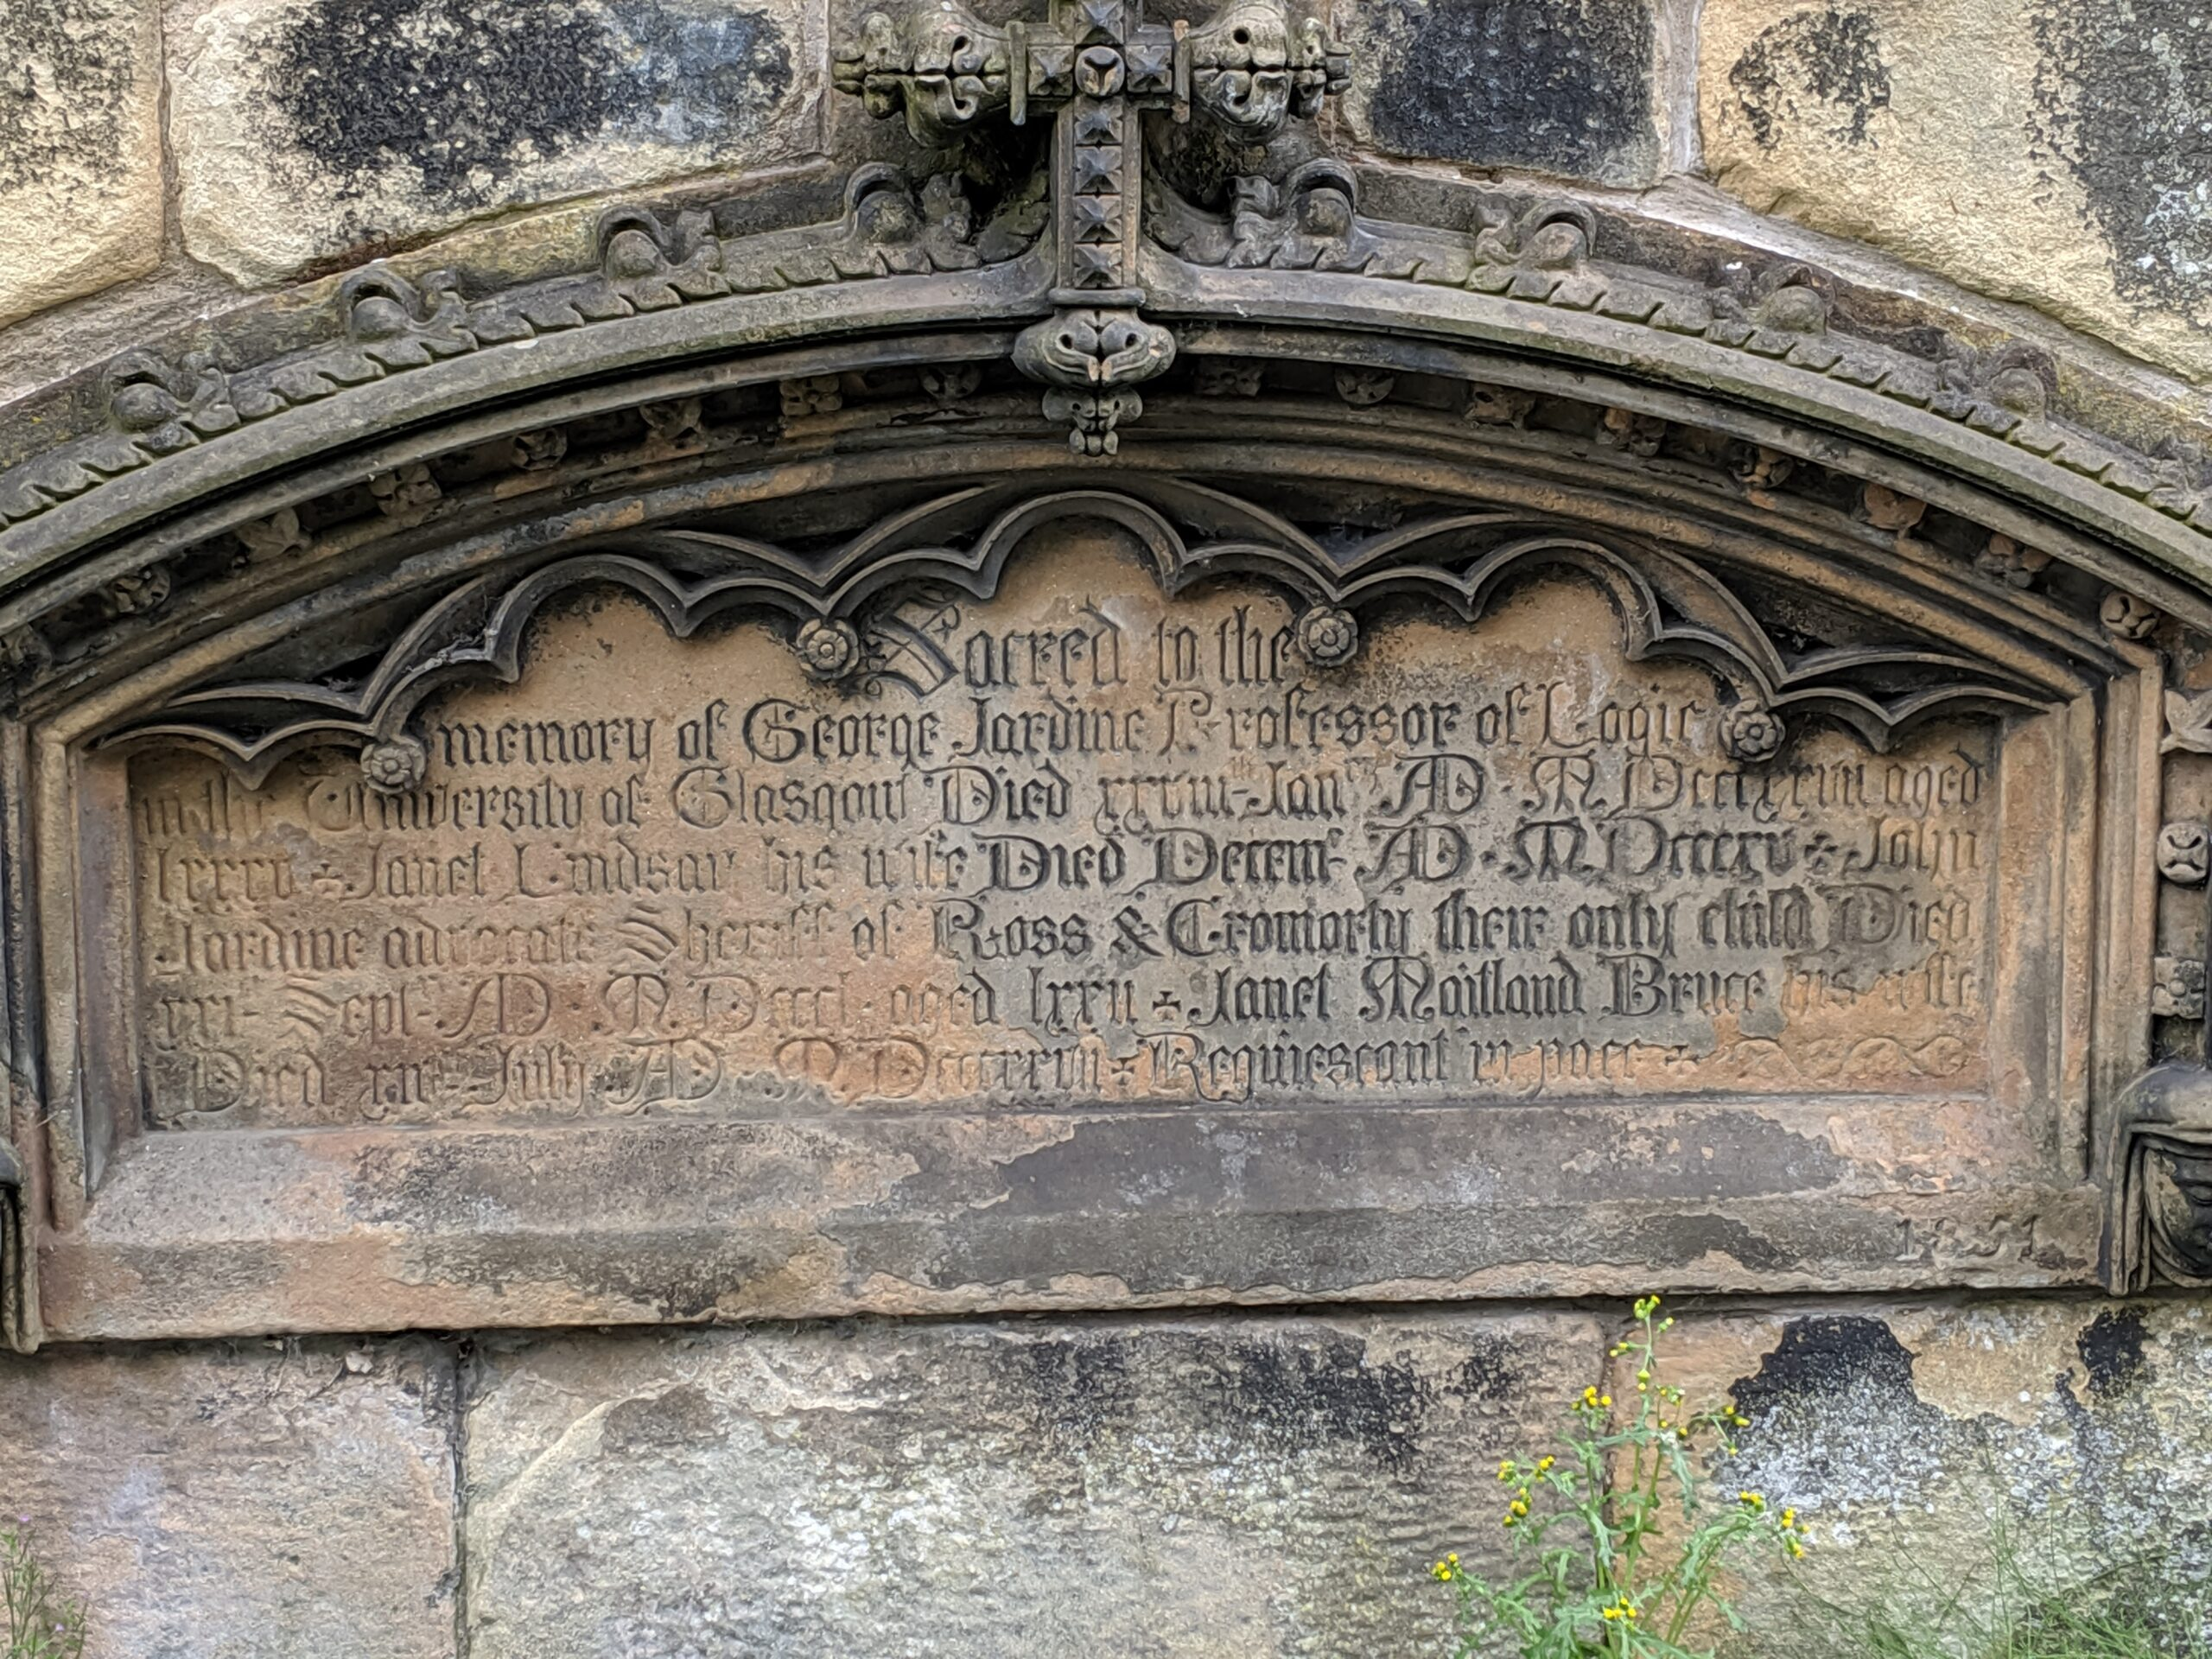 A stone plaque in the stone wall around the church marks the family burial site for George Jardine's family.